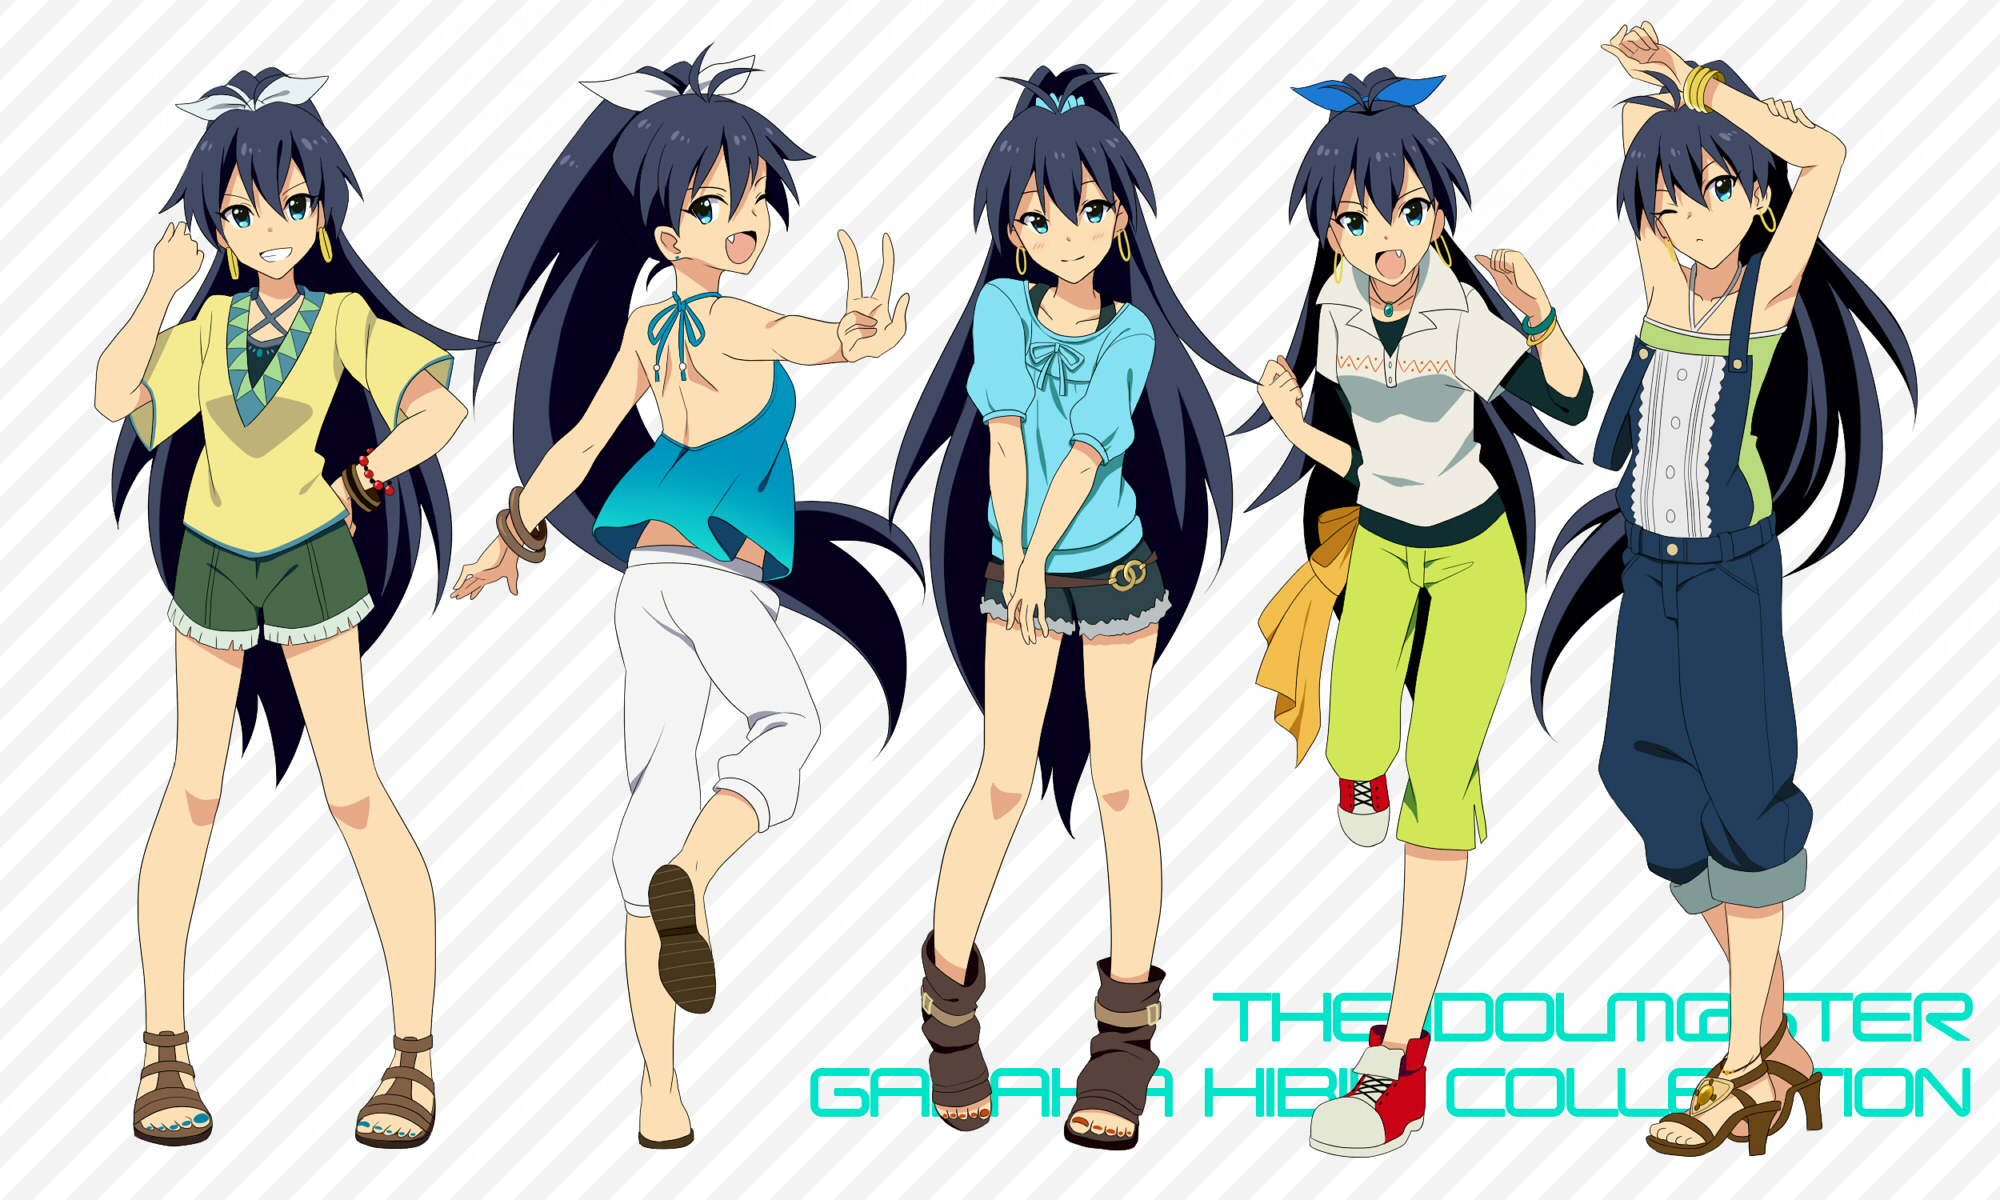 Idol M Ster Anime Characters : Ganaha hibiki the idolm ster wallpaper